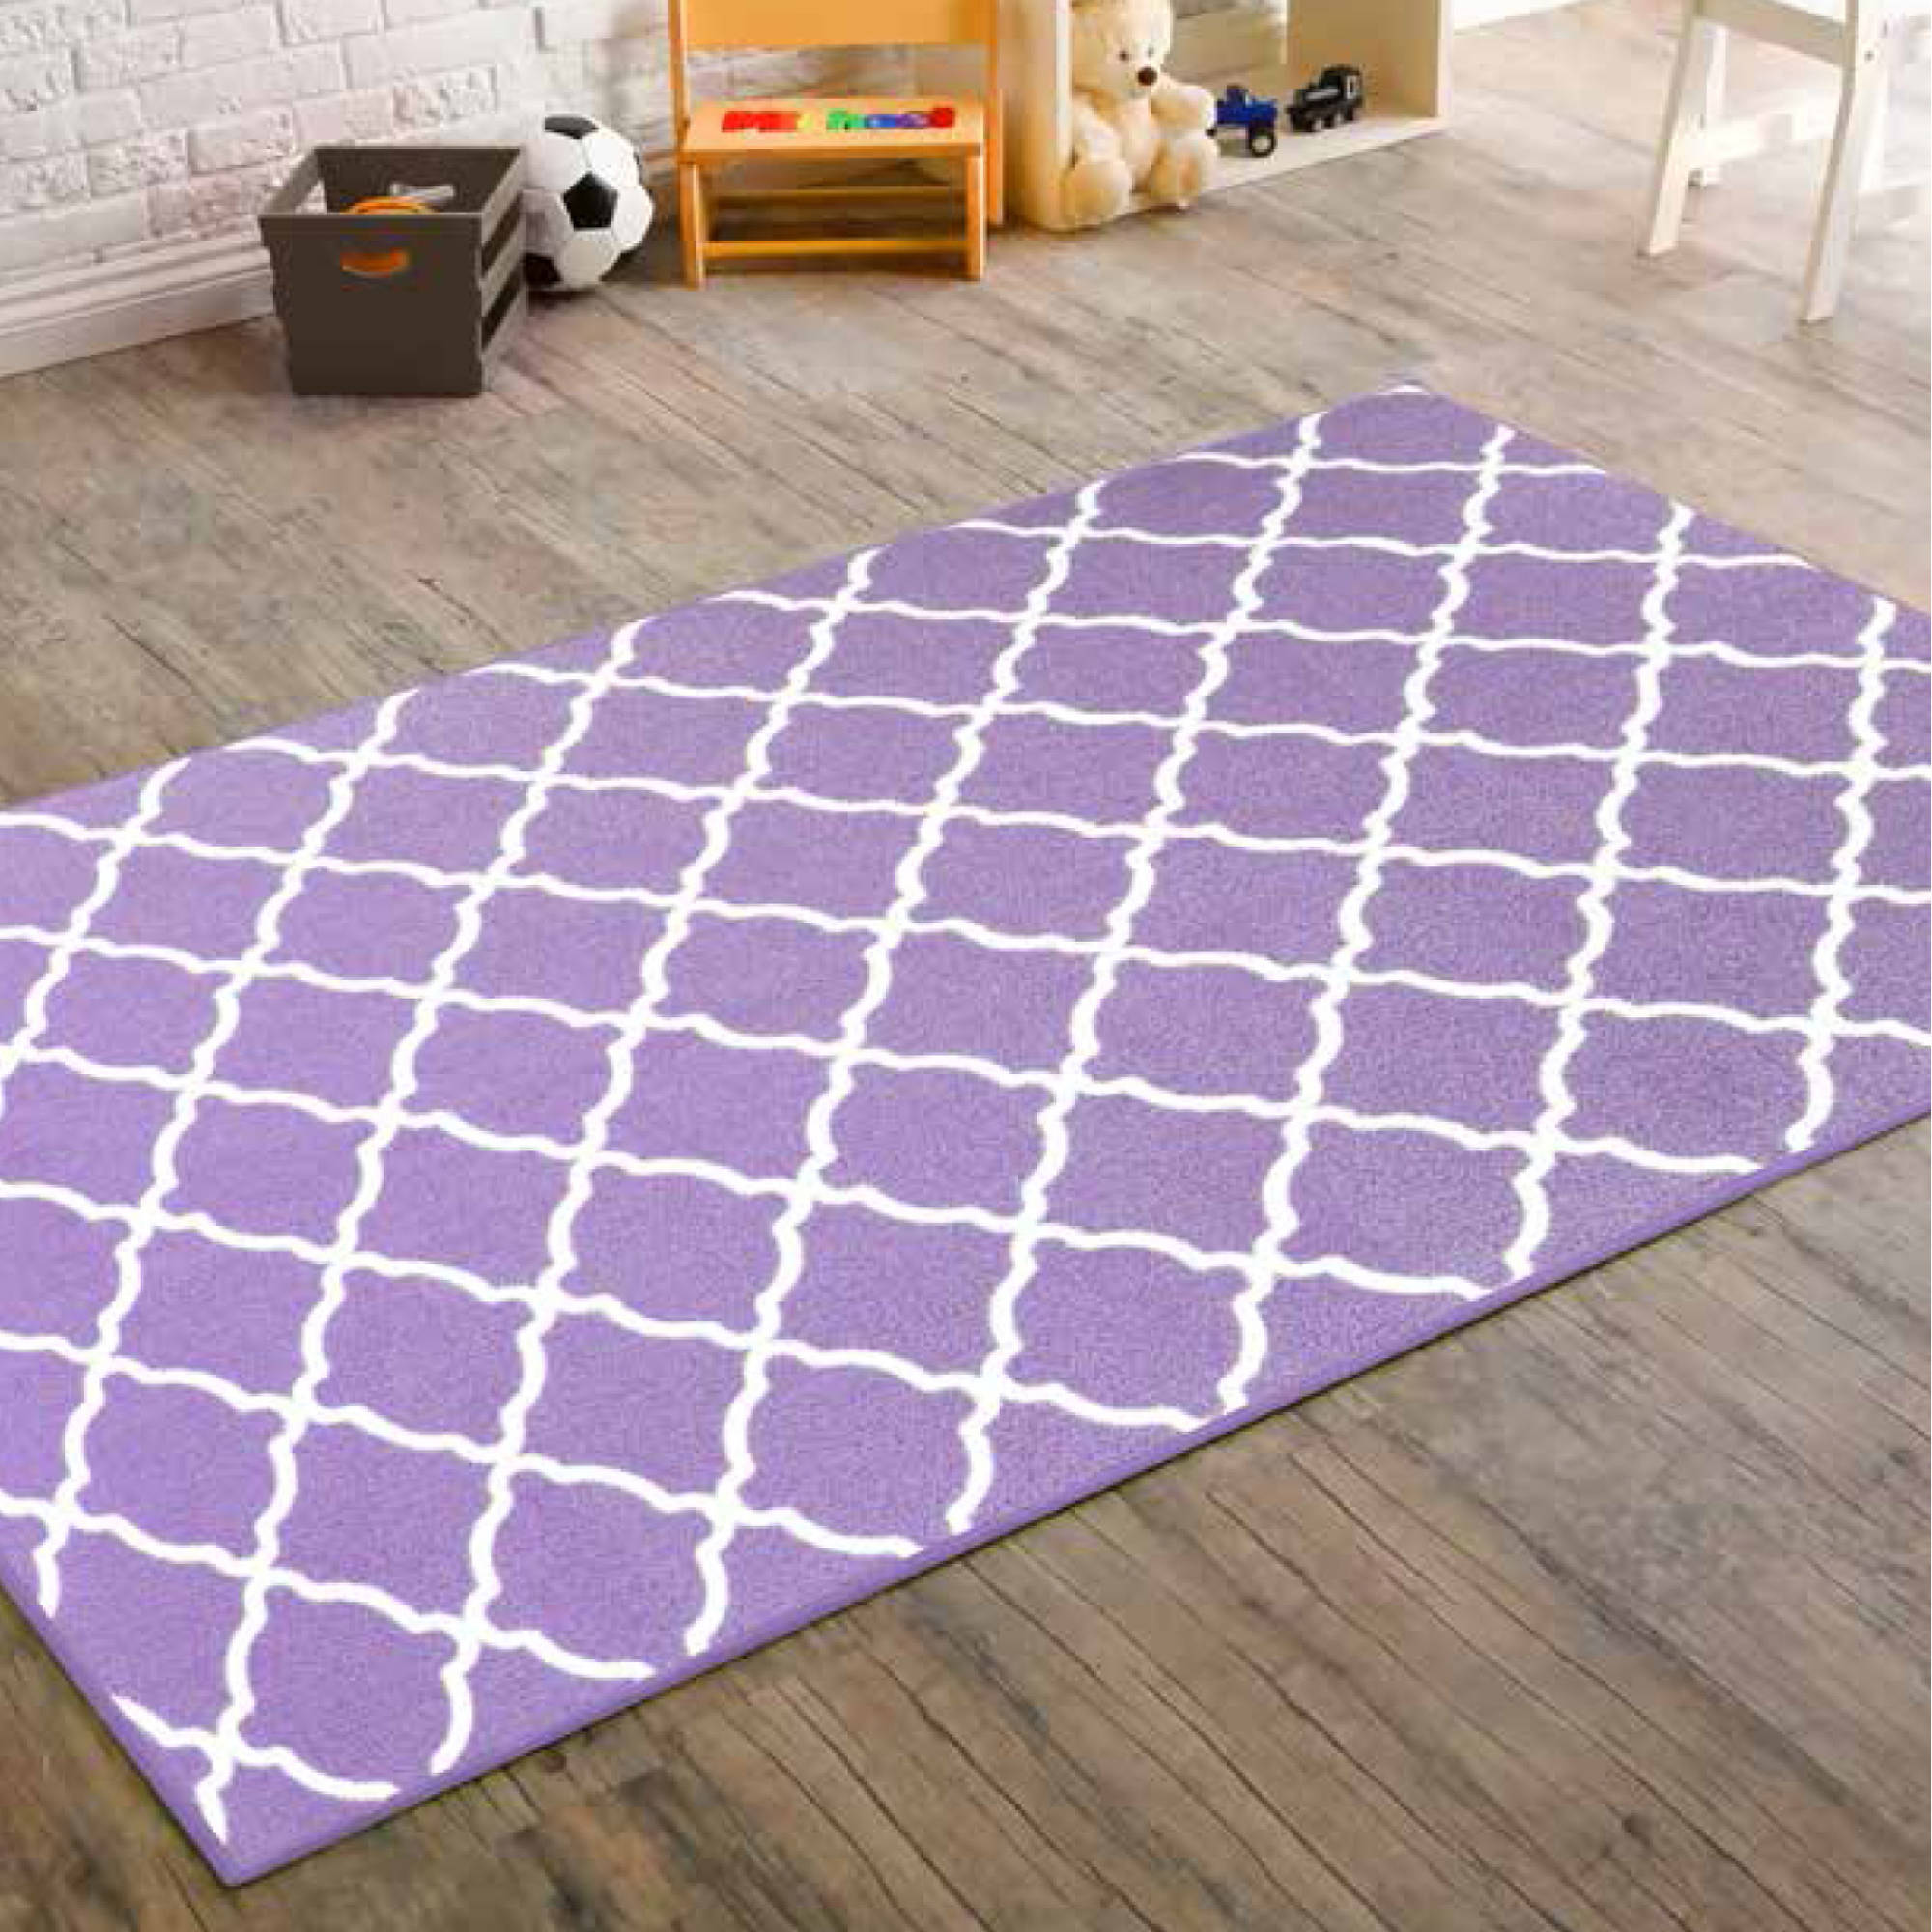 mainstays kids trellis rug walmart com rh walmart com Rooms with Area Rugs Walmart Personalized Rugs